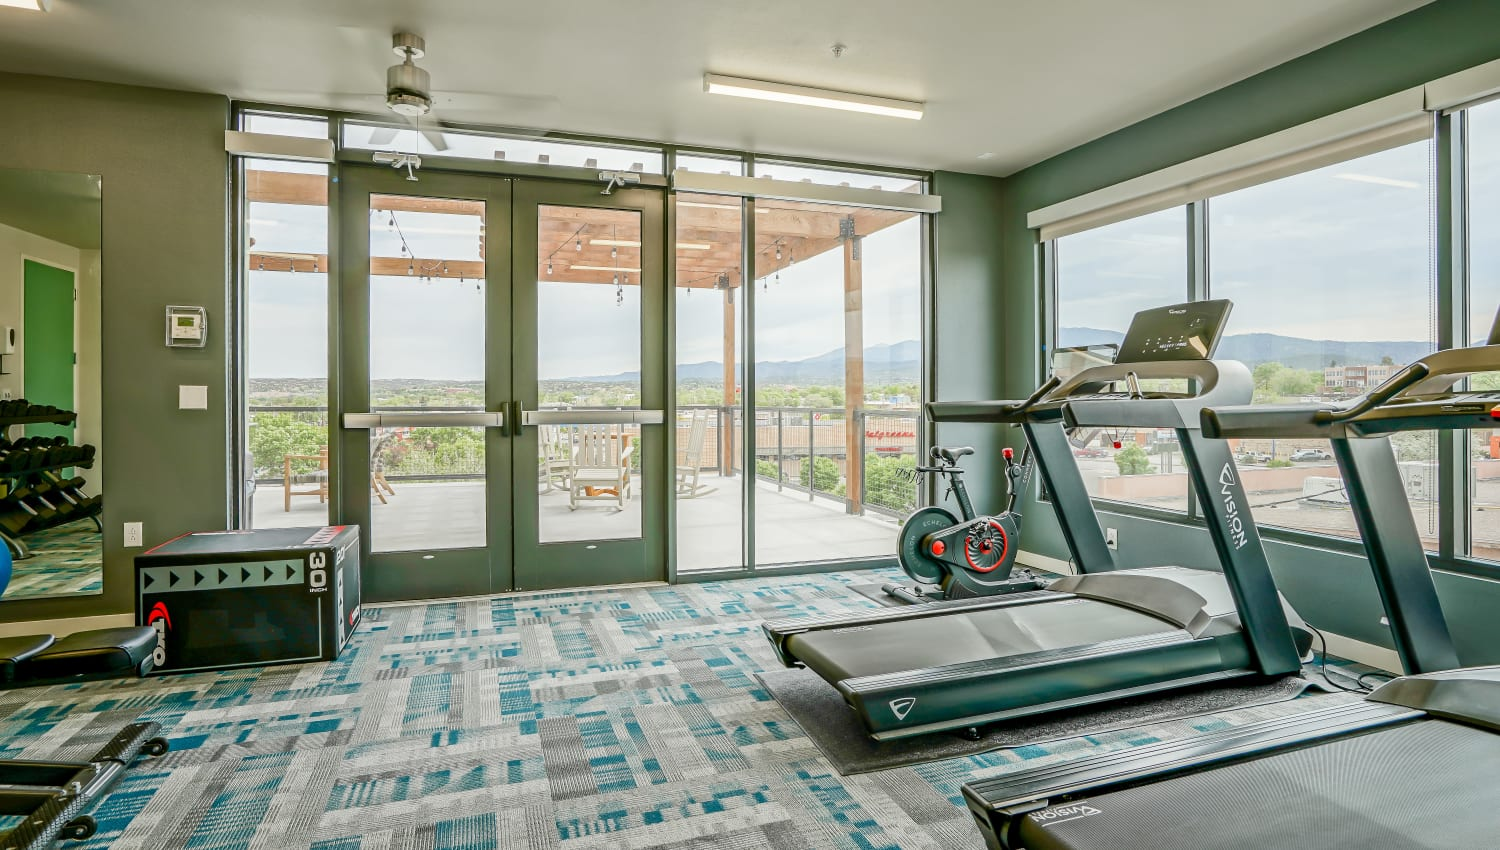 Spacious fitness center with treadmills at Capitol Flats in Santa Fe, New Mexico